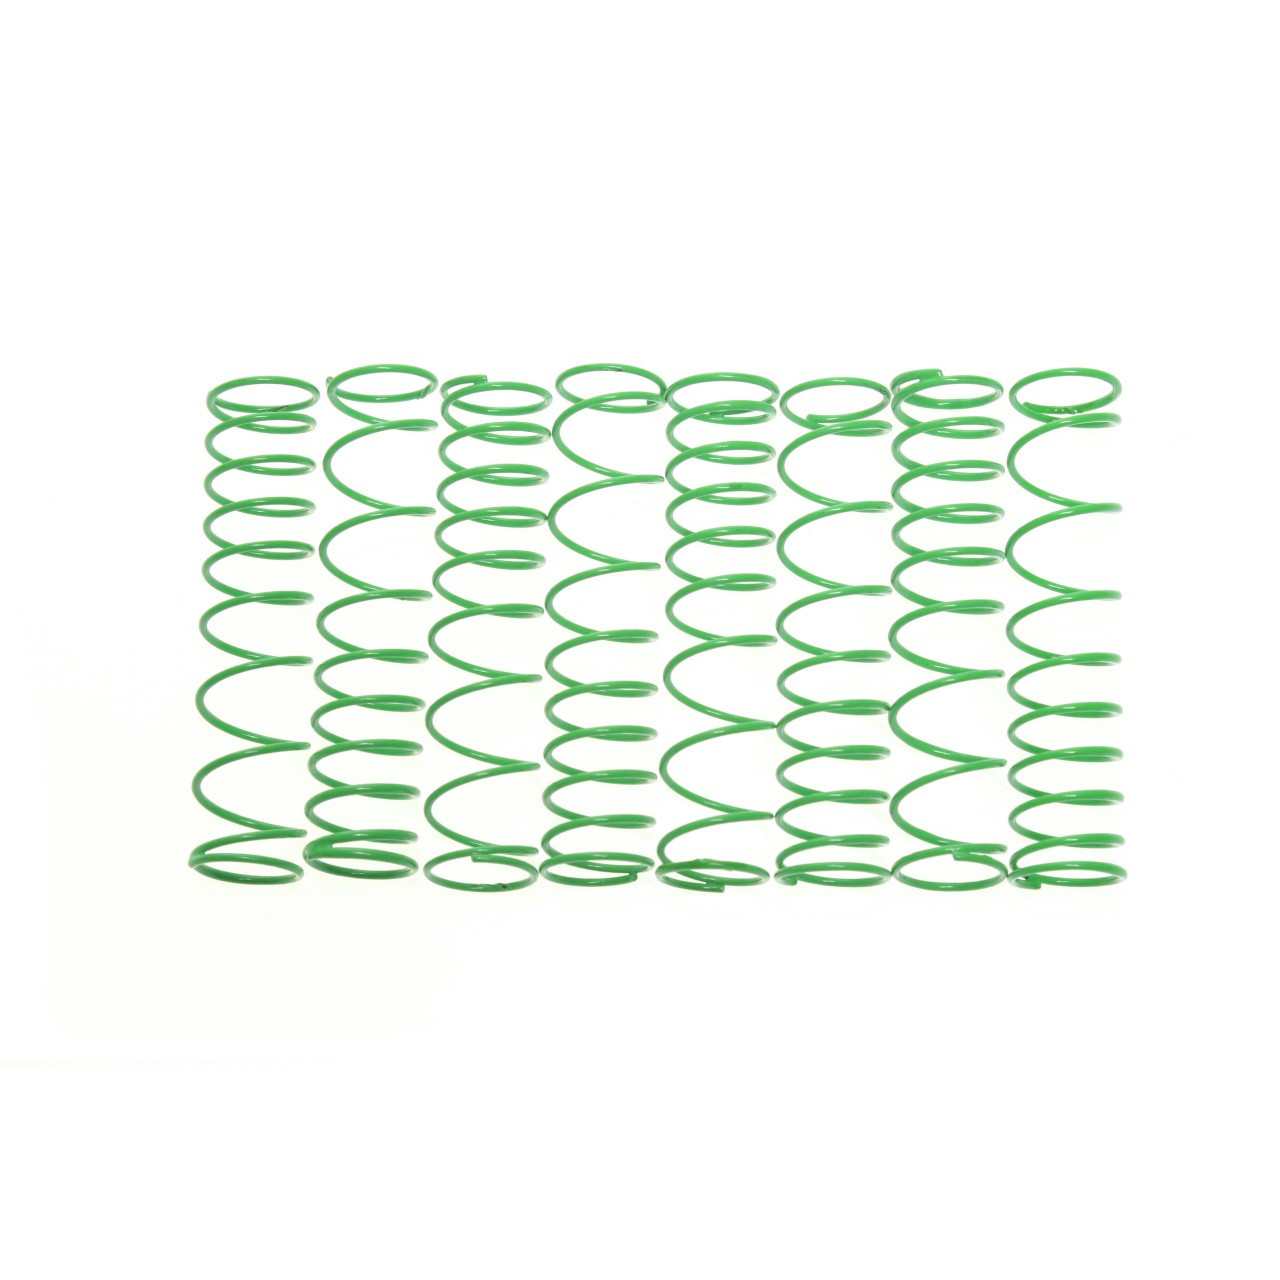 Traxxas T-MAXX E-MAXX Dual rate springs in Green. 8 Pack